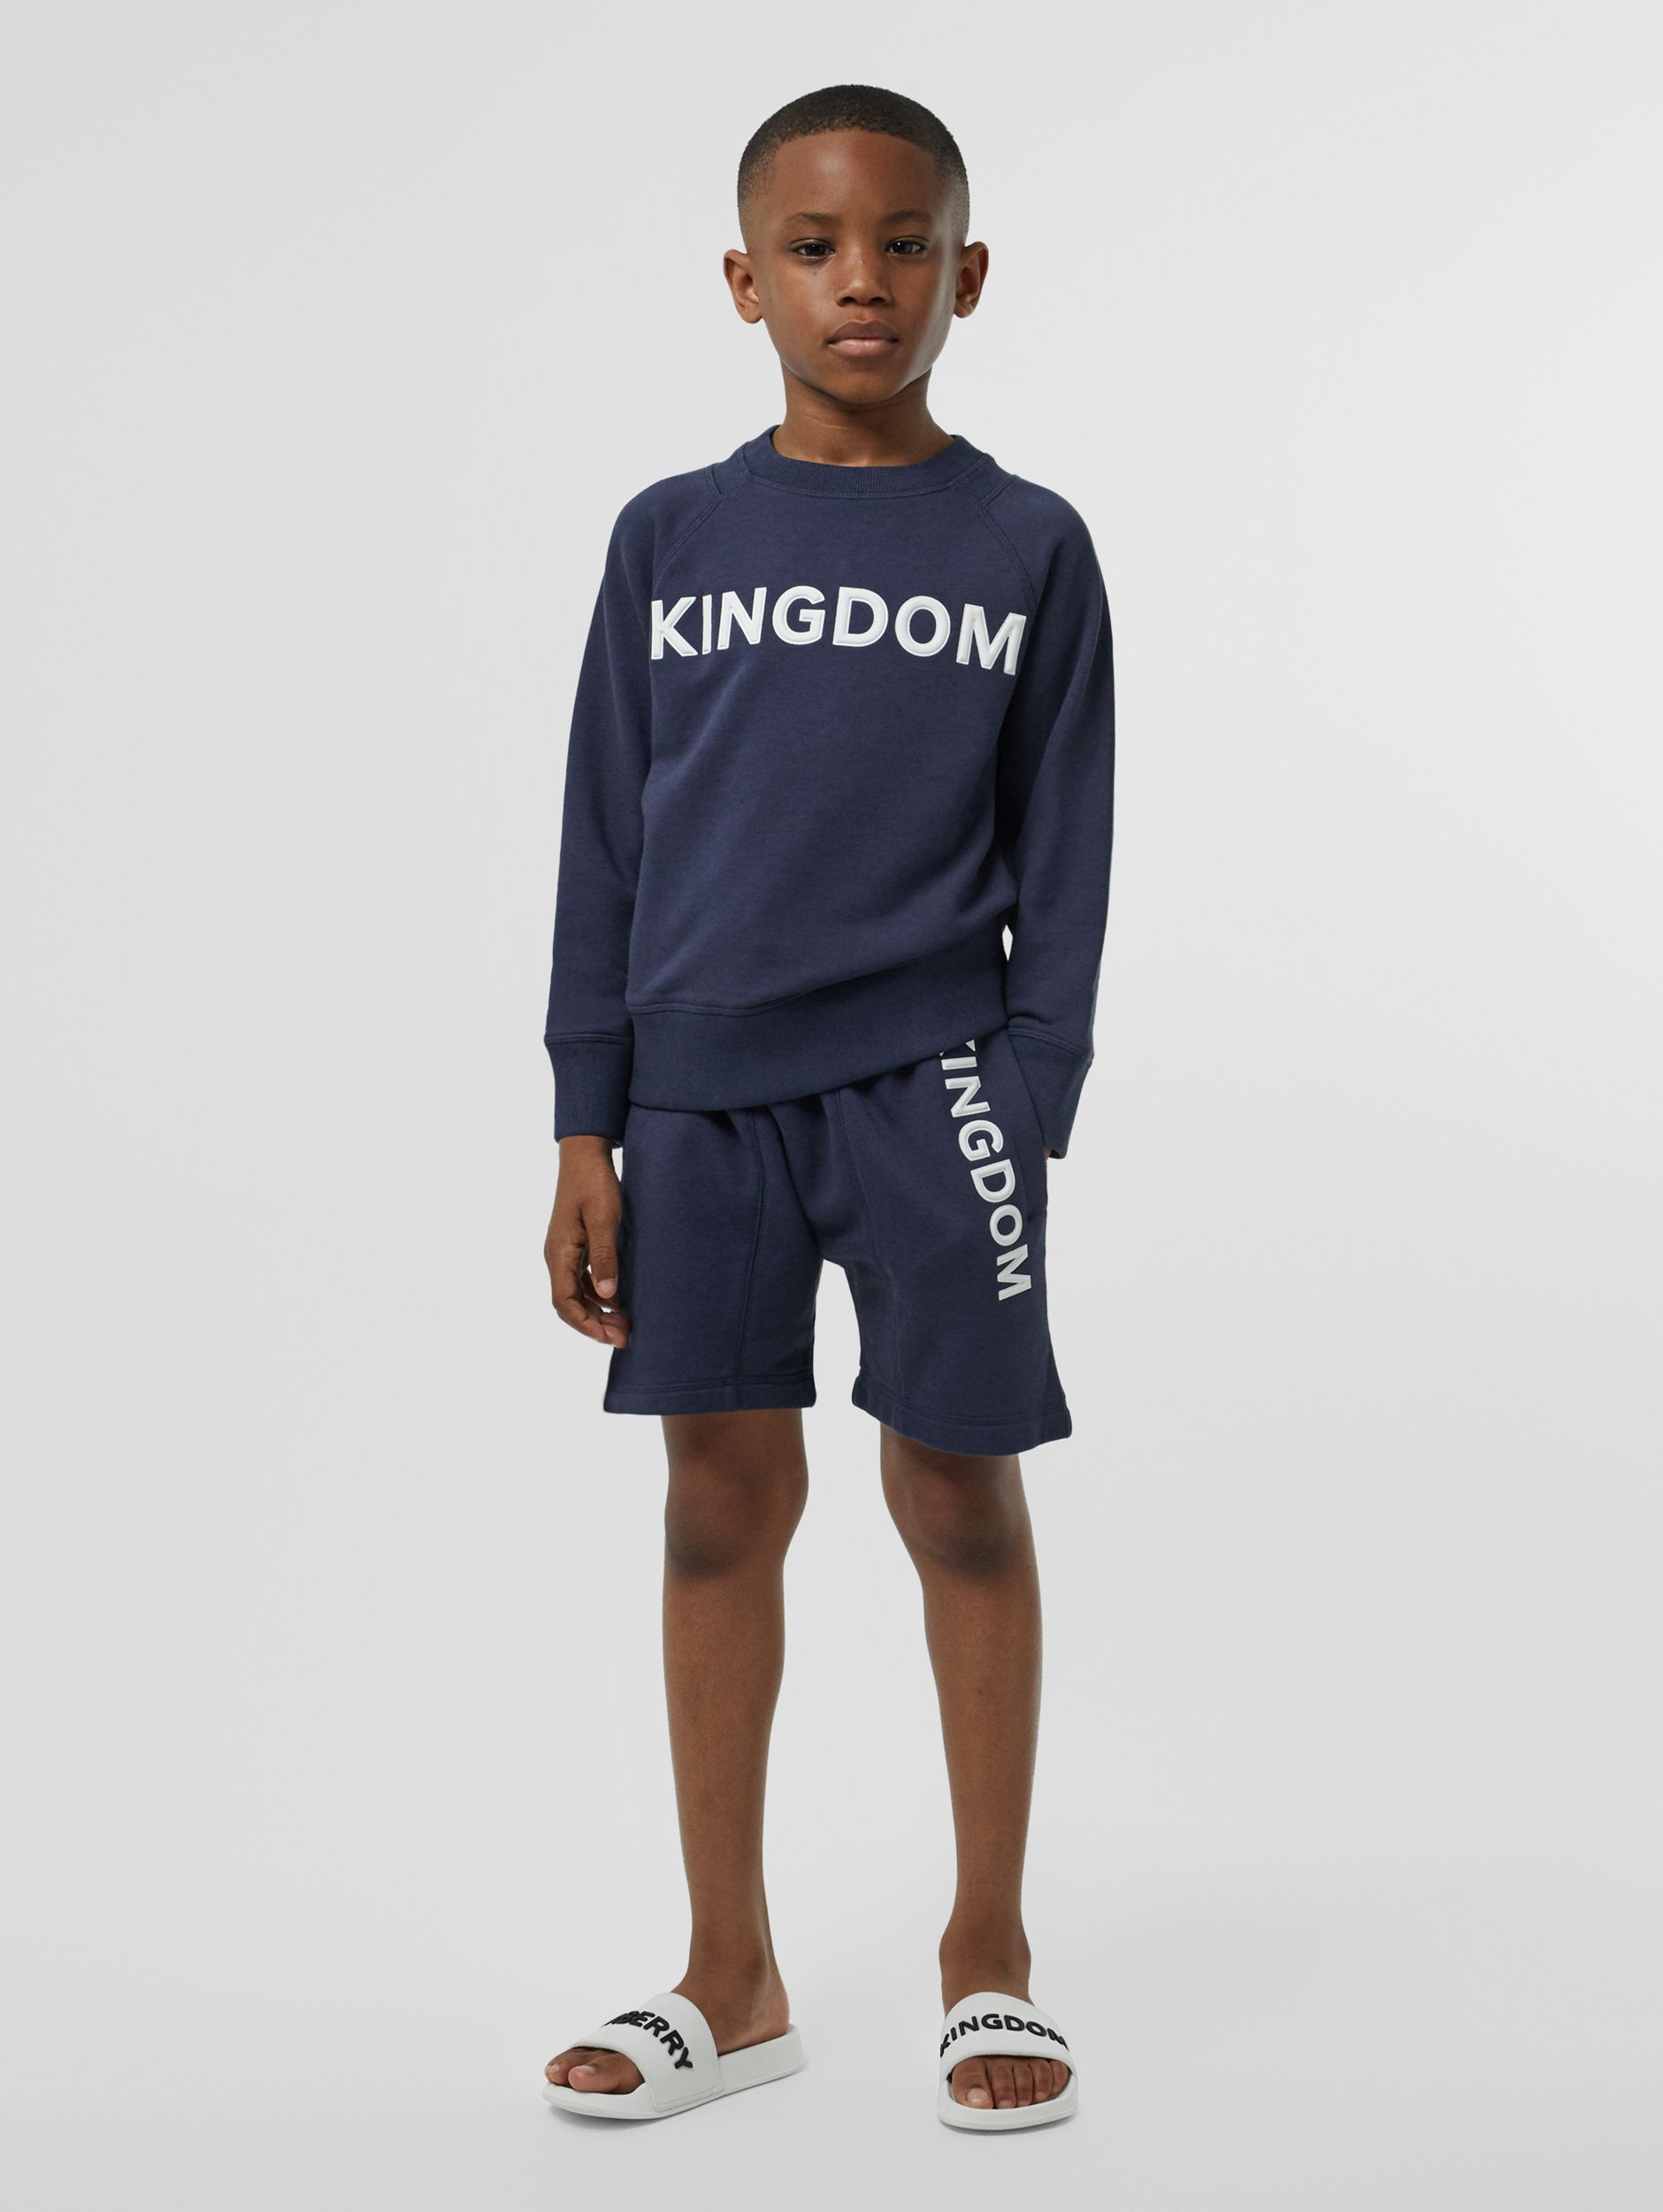 Kingdom Motif Cotton Drawcord Shorts in Slate Blue Melange | Burberry United Kingdom - 3